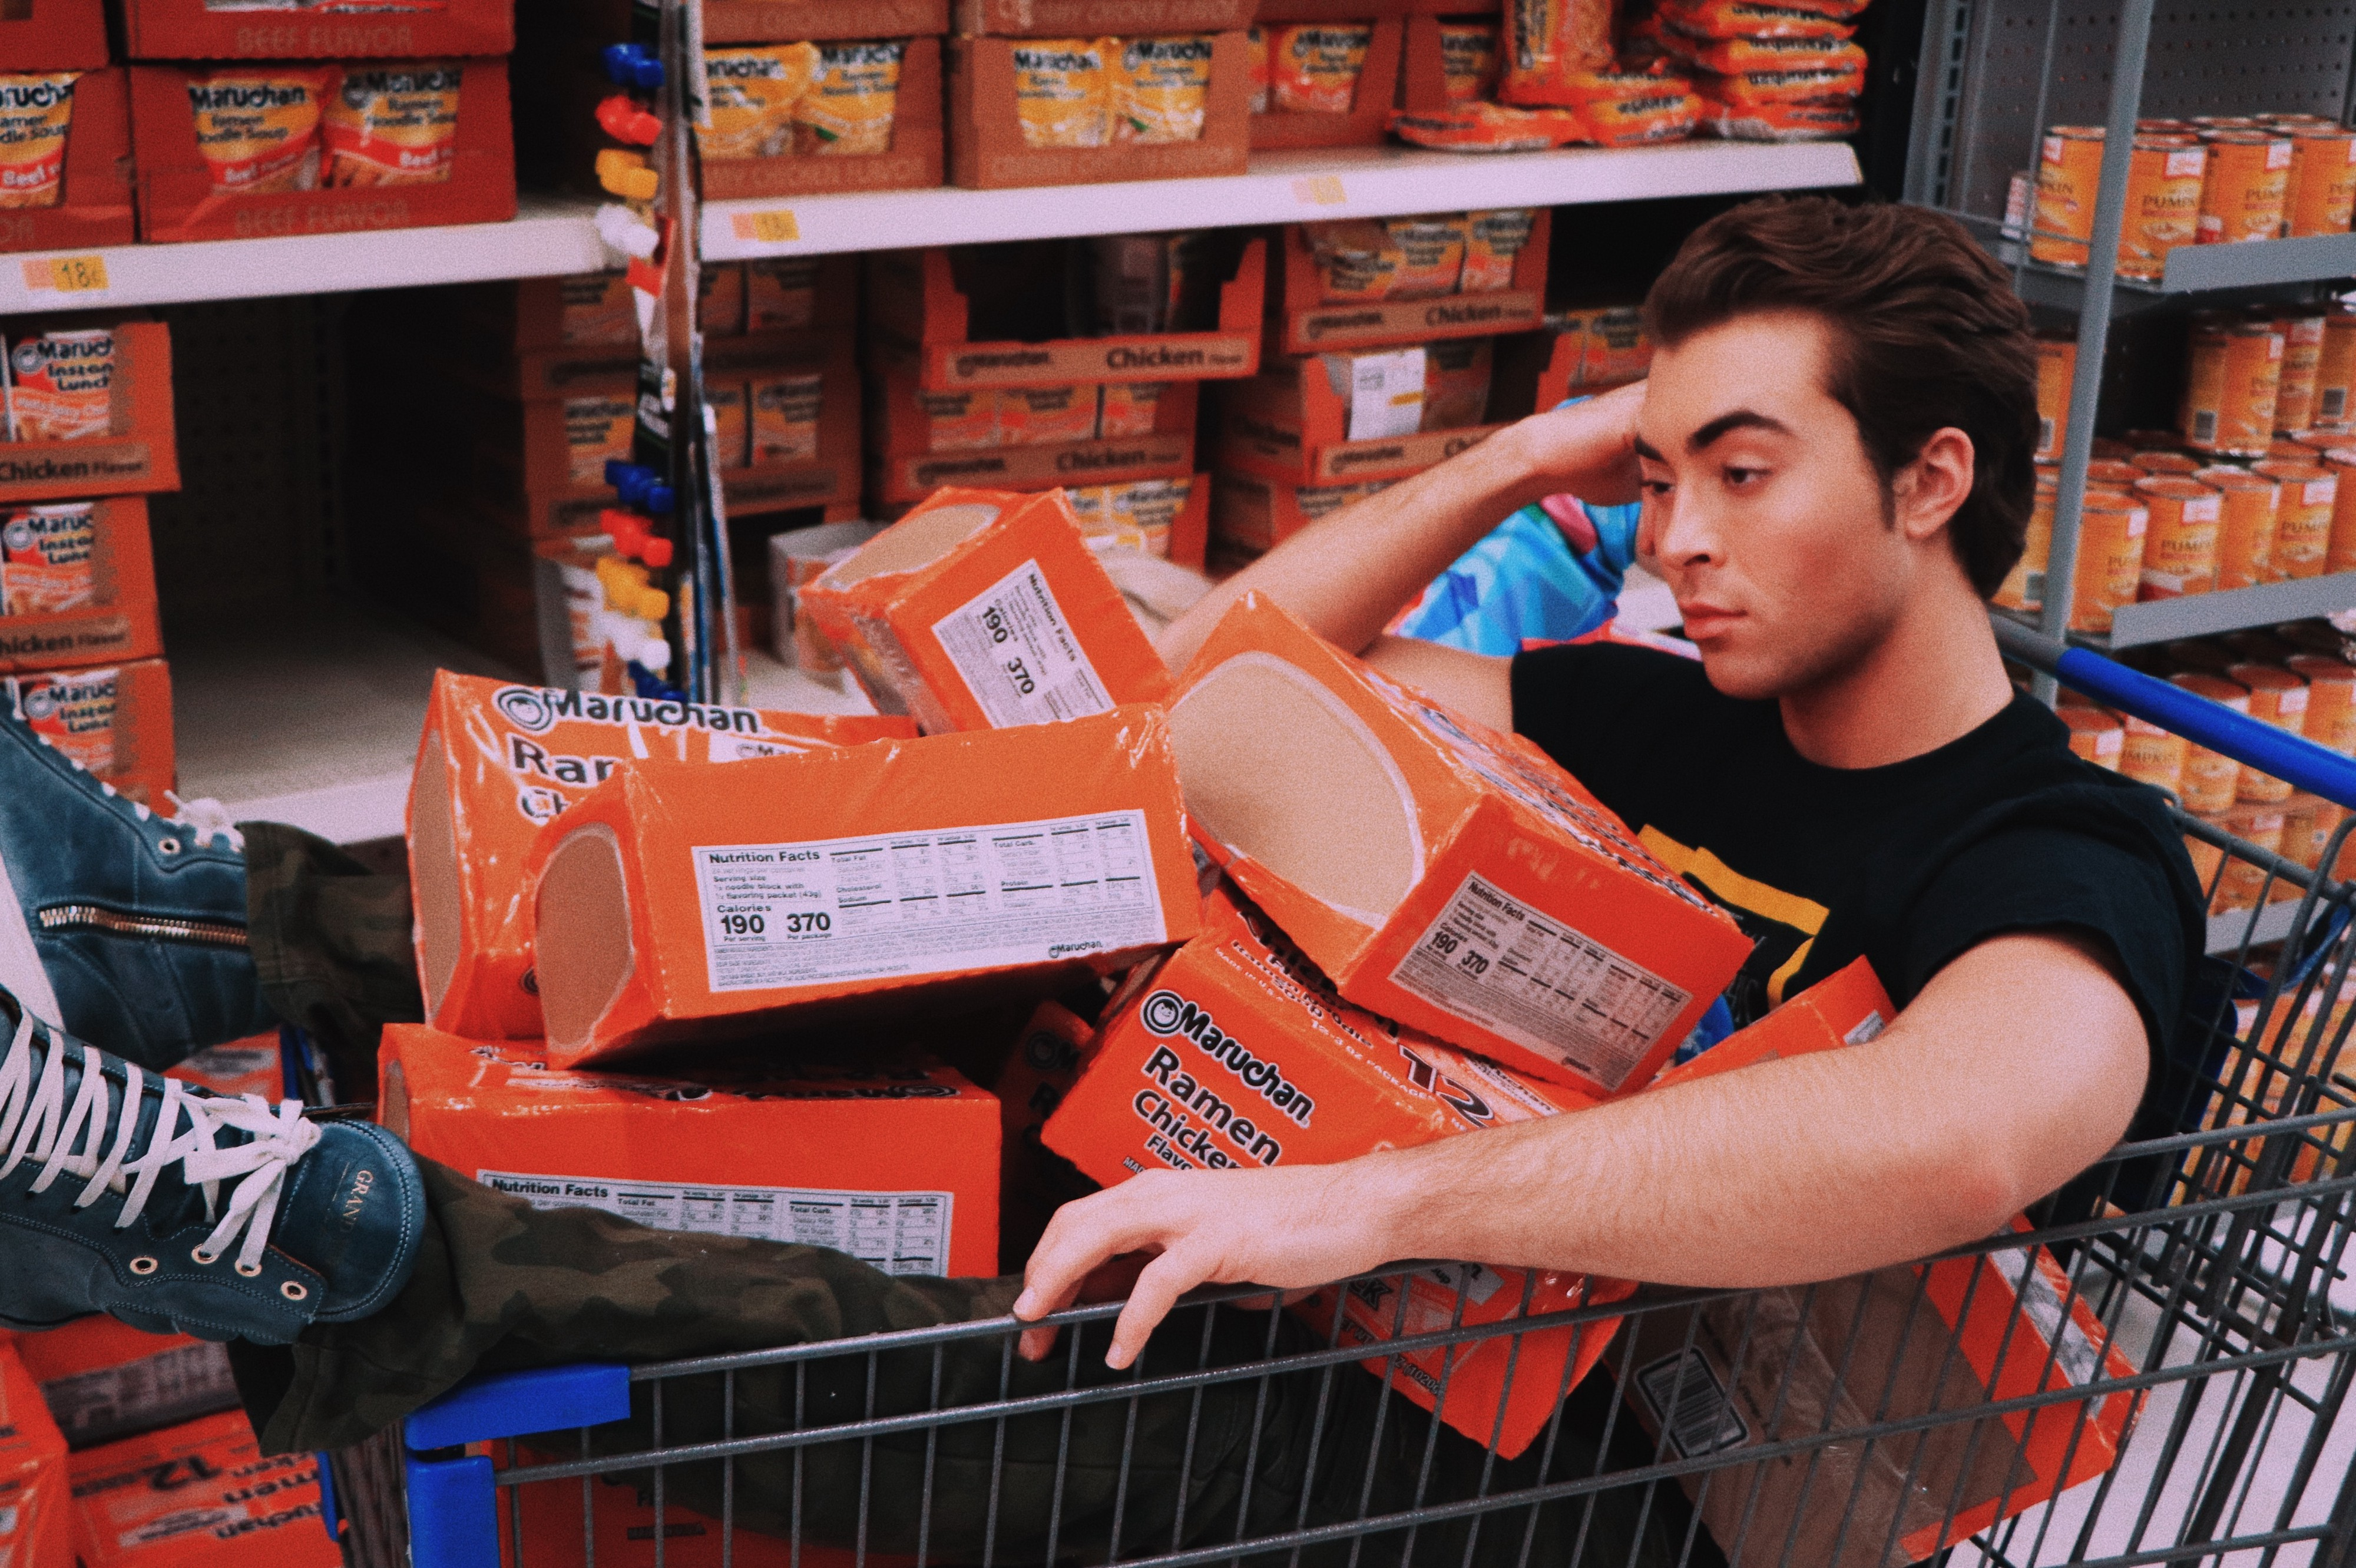 Young man in cart full of Ramen noodles